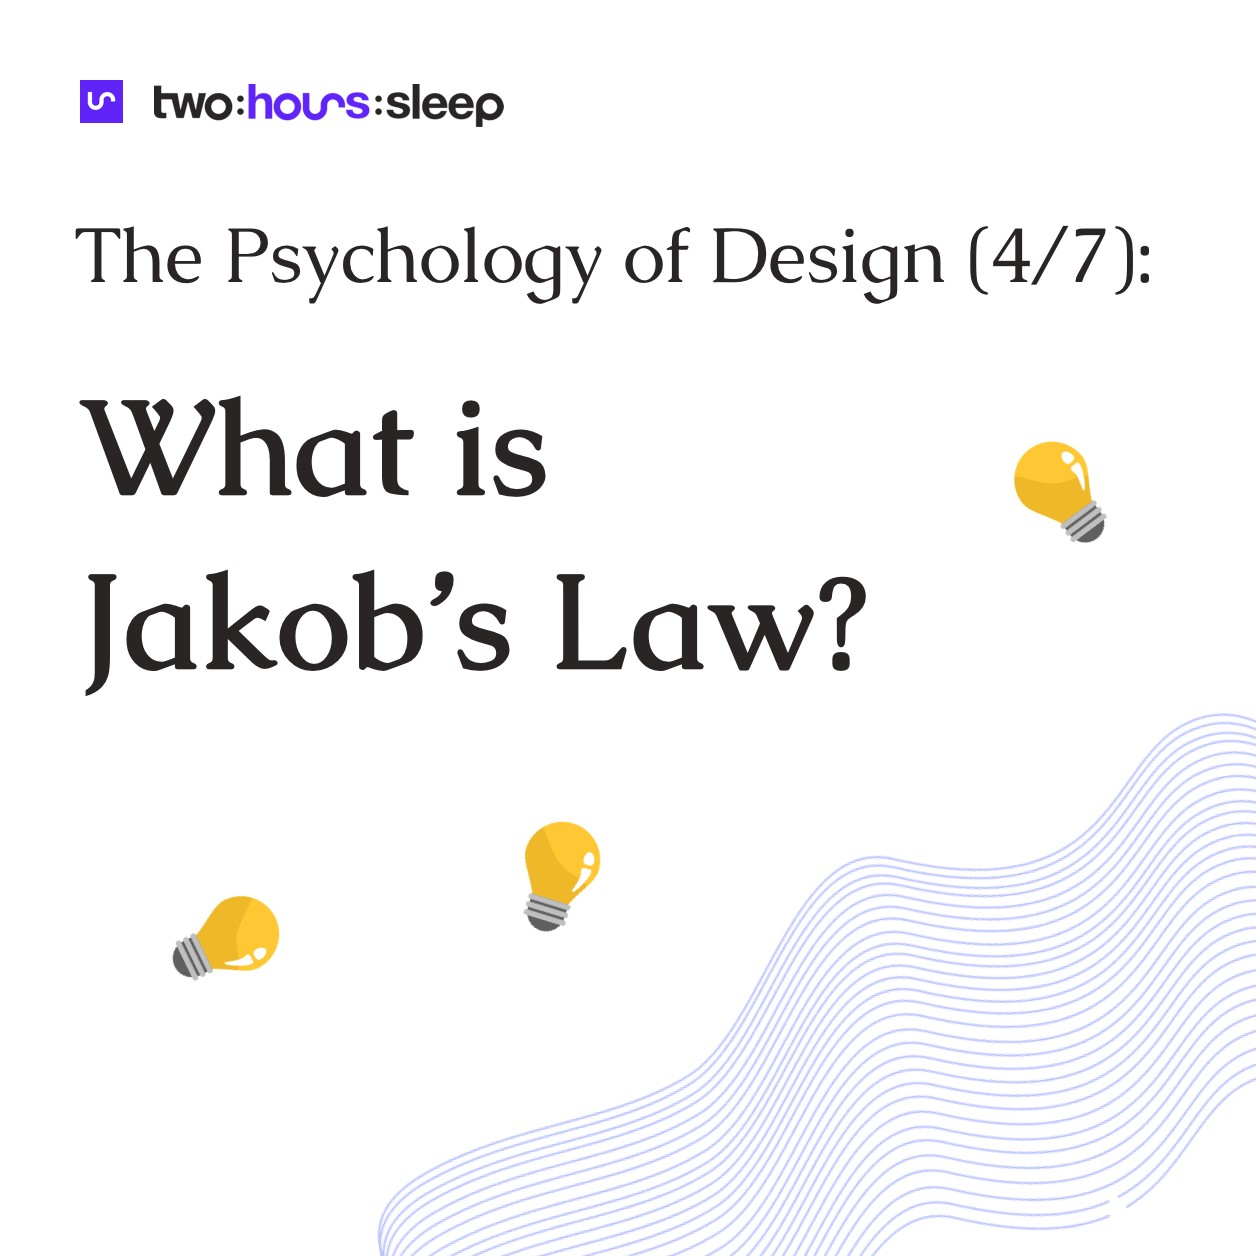 What is Jakob's Law?